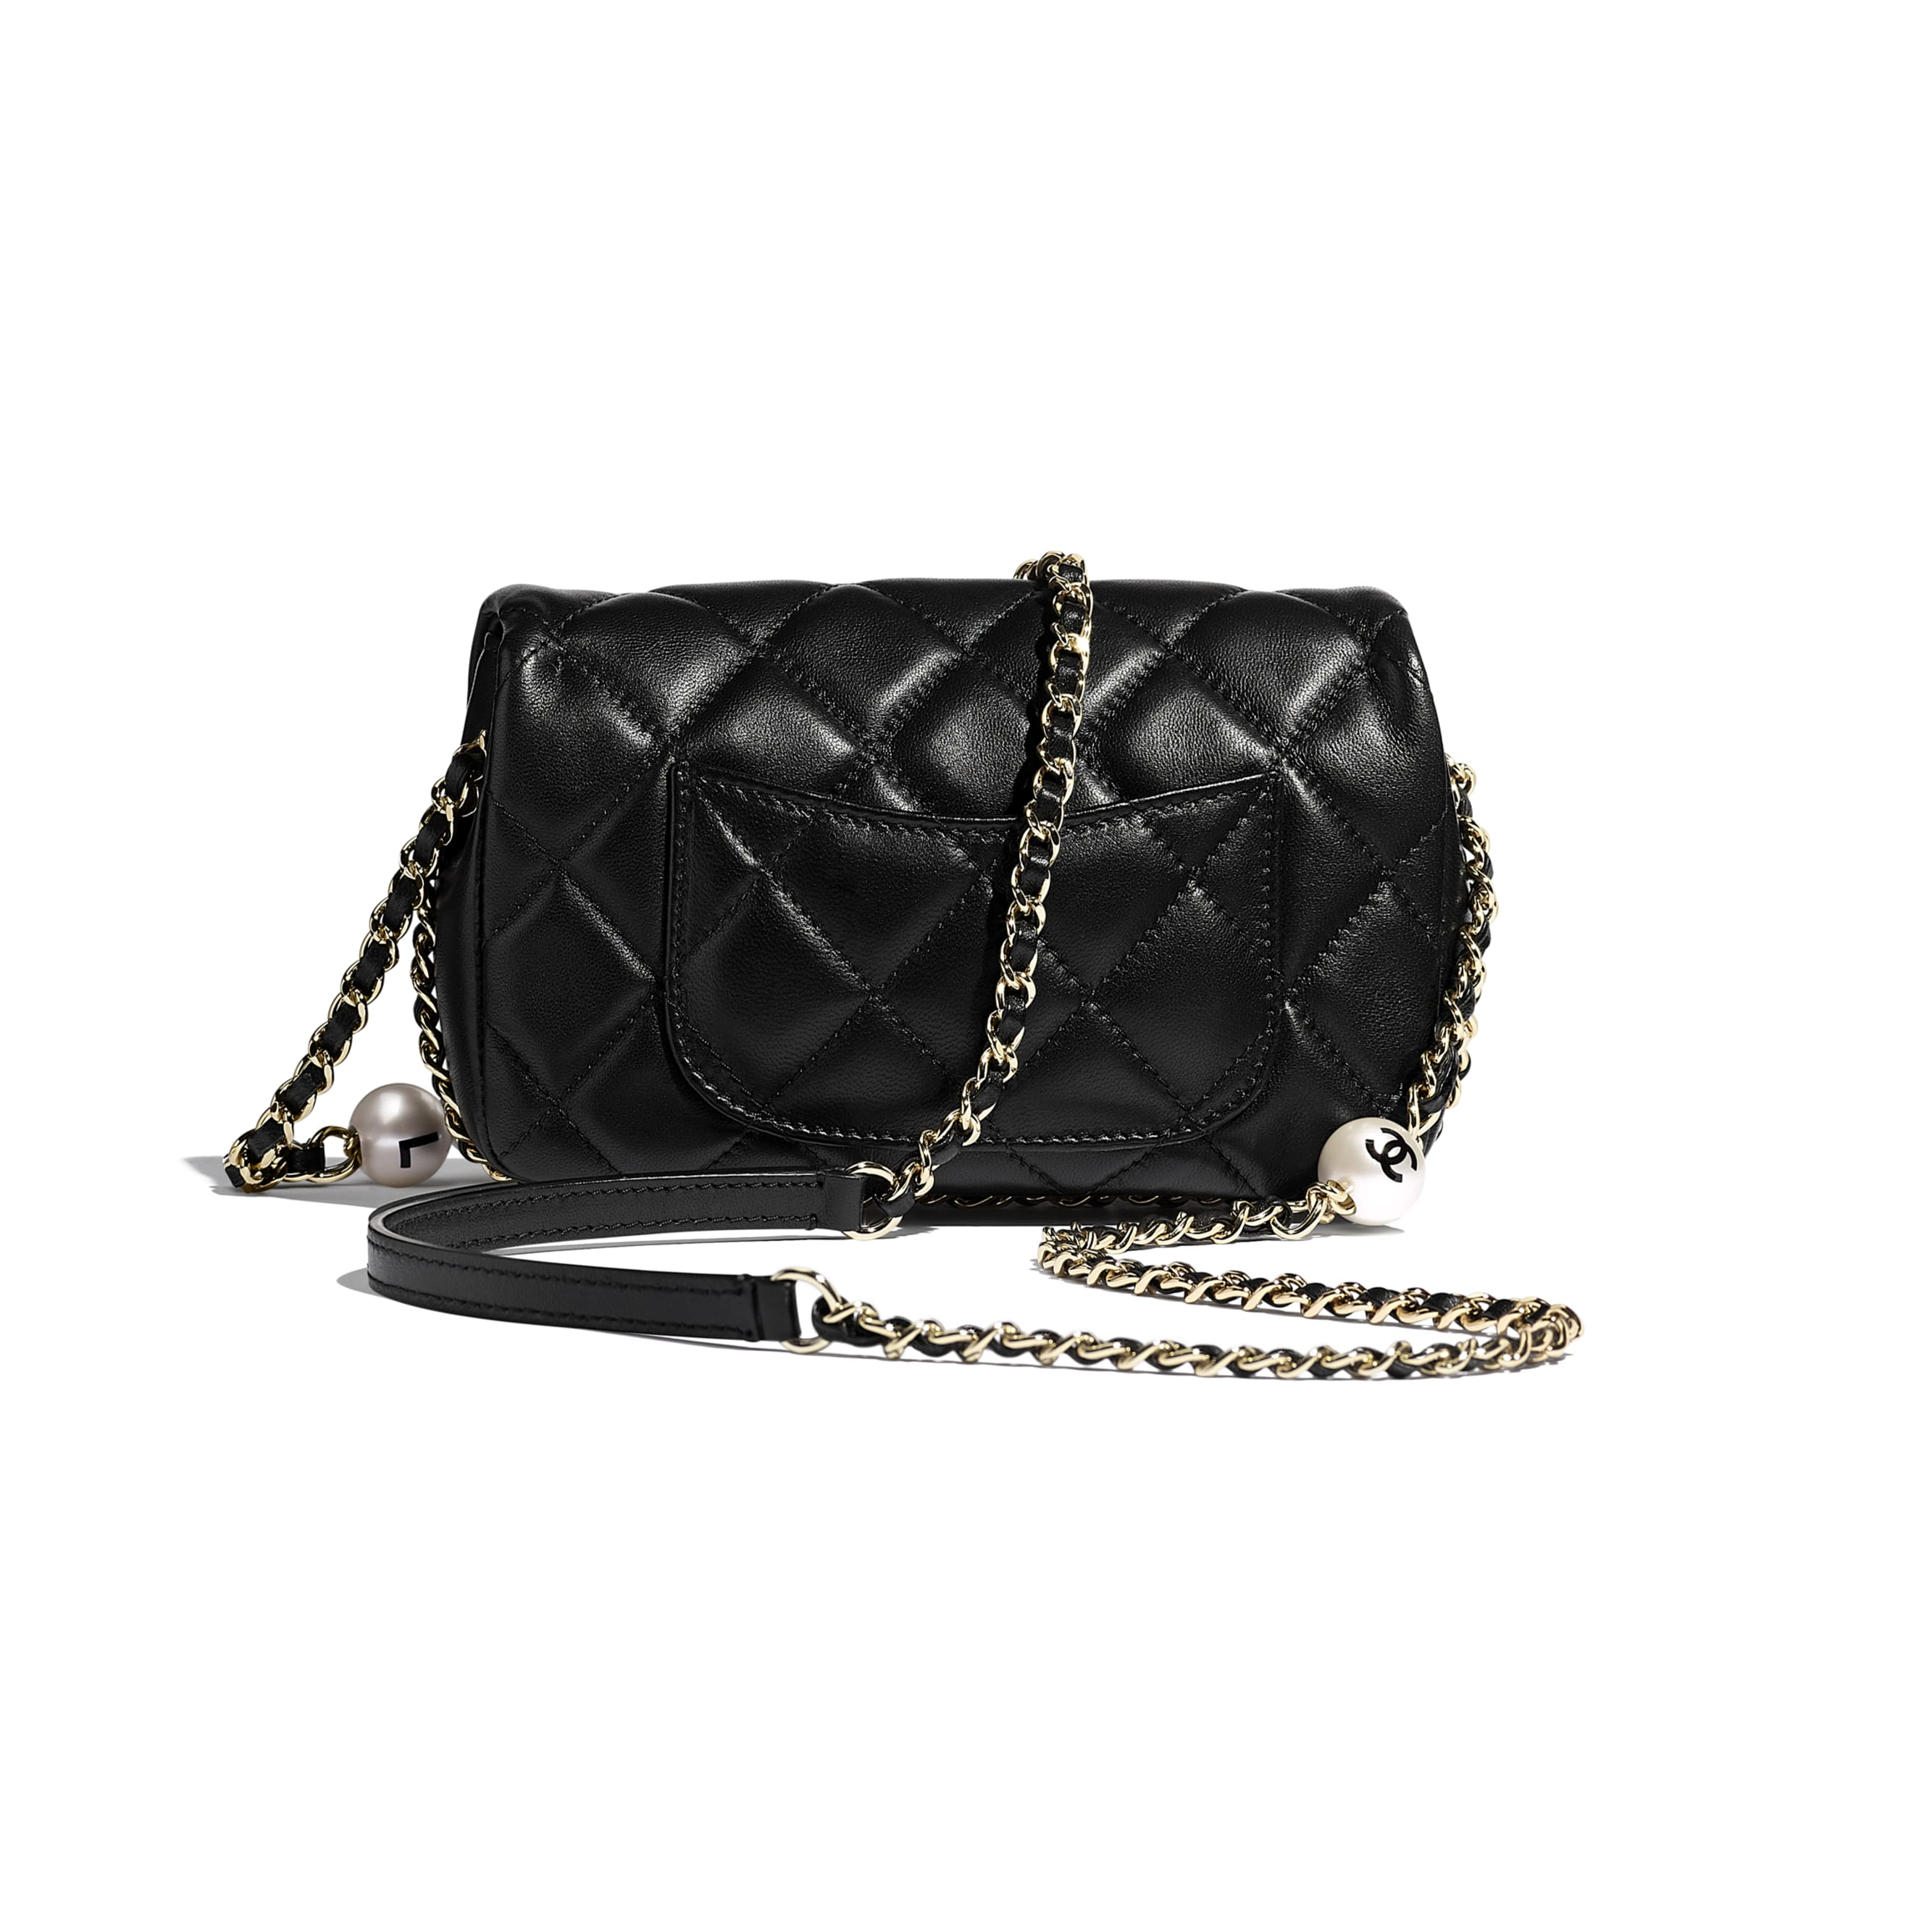 Small Flap Bag - Black - Lambskin, Imitation Pearls & Gold Metal - Alternative view - see standard sized version